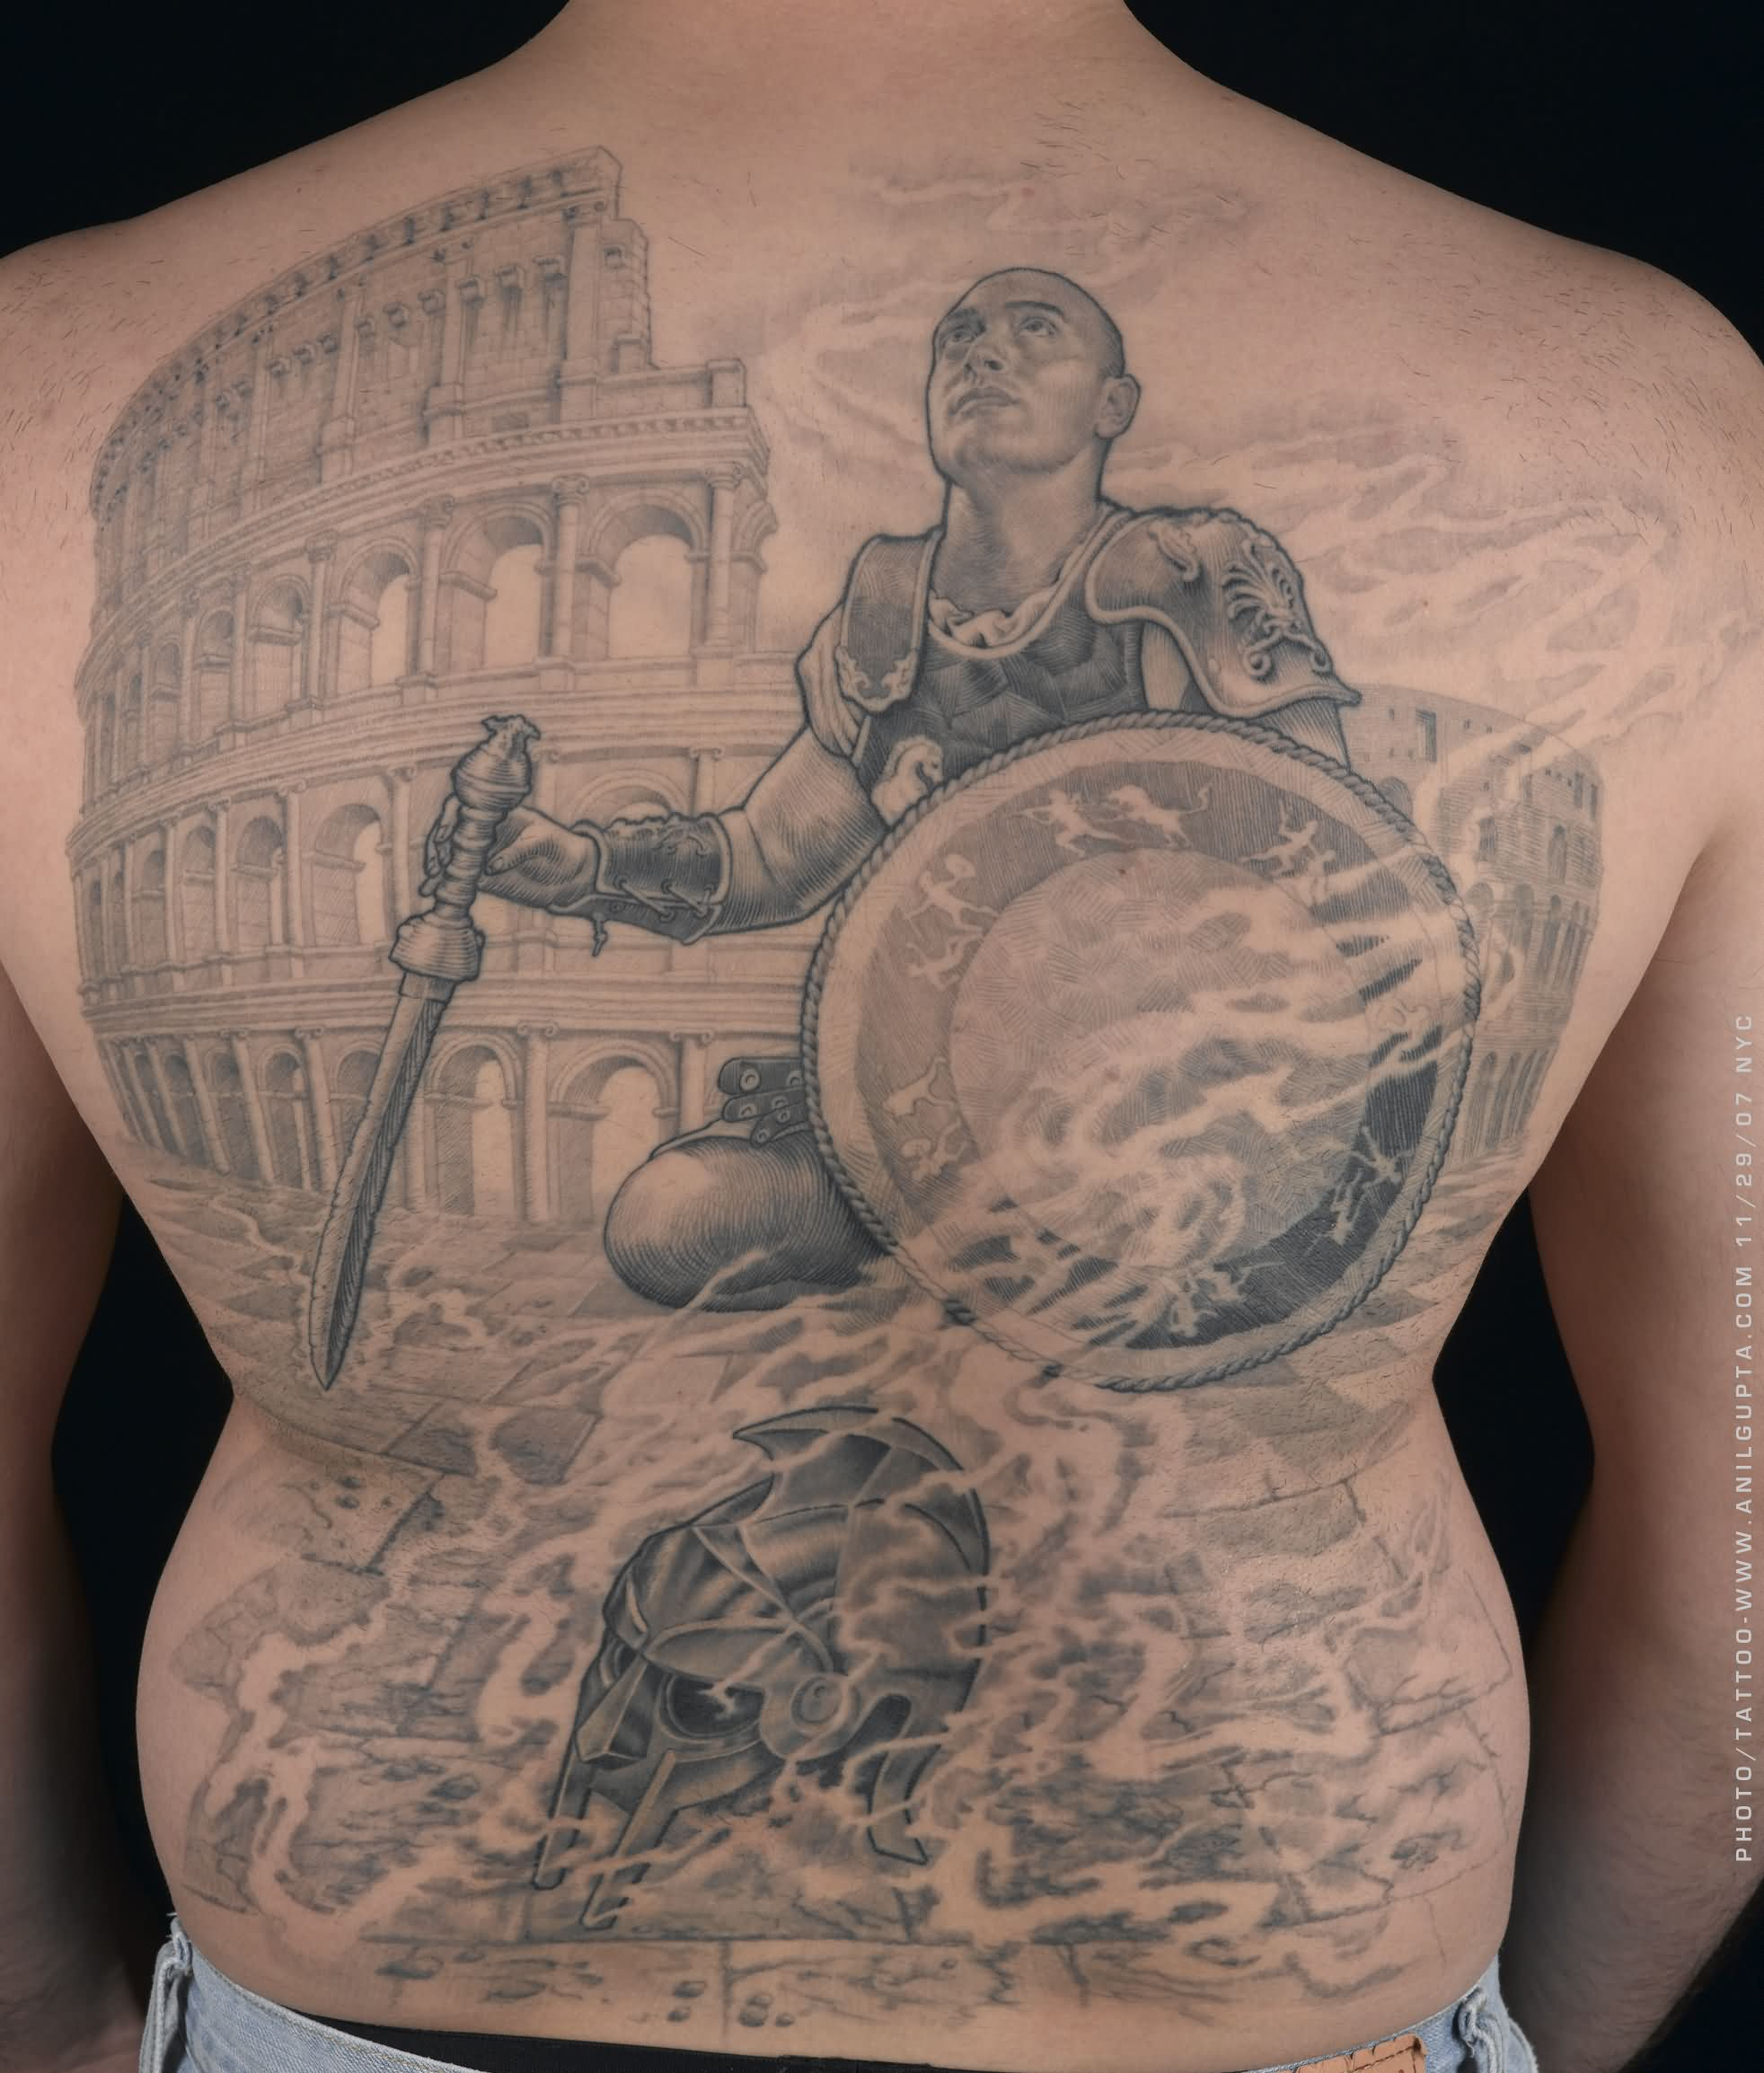 Tattoo Historical Quotes: 52+ Nice Historical Tattoos